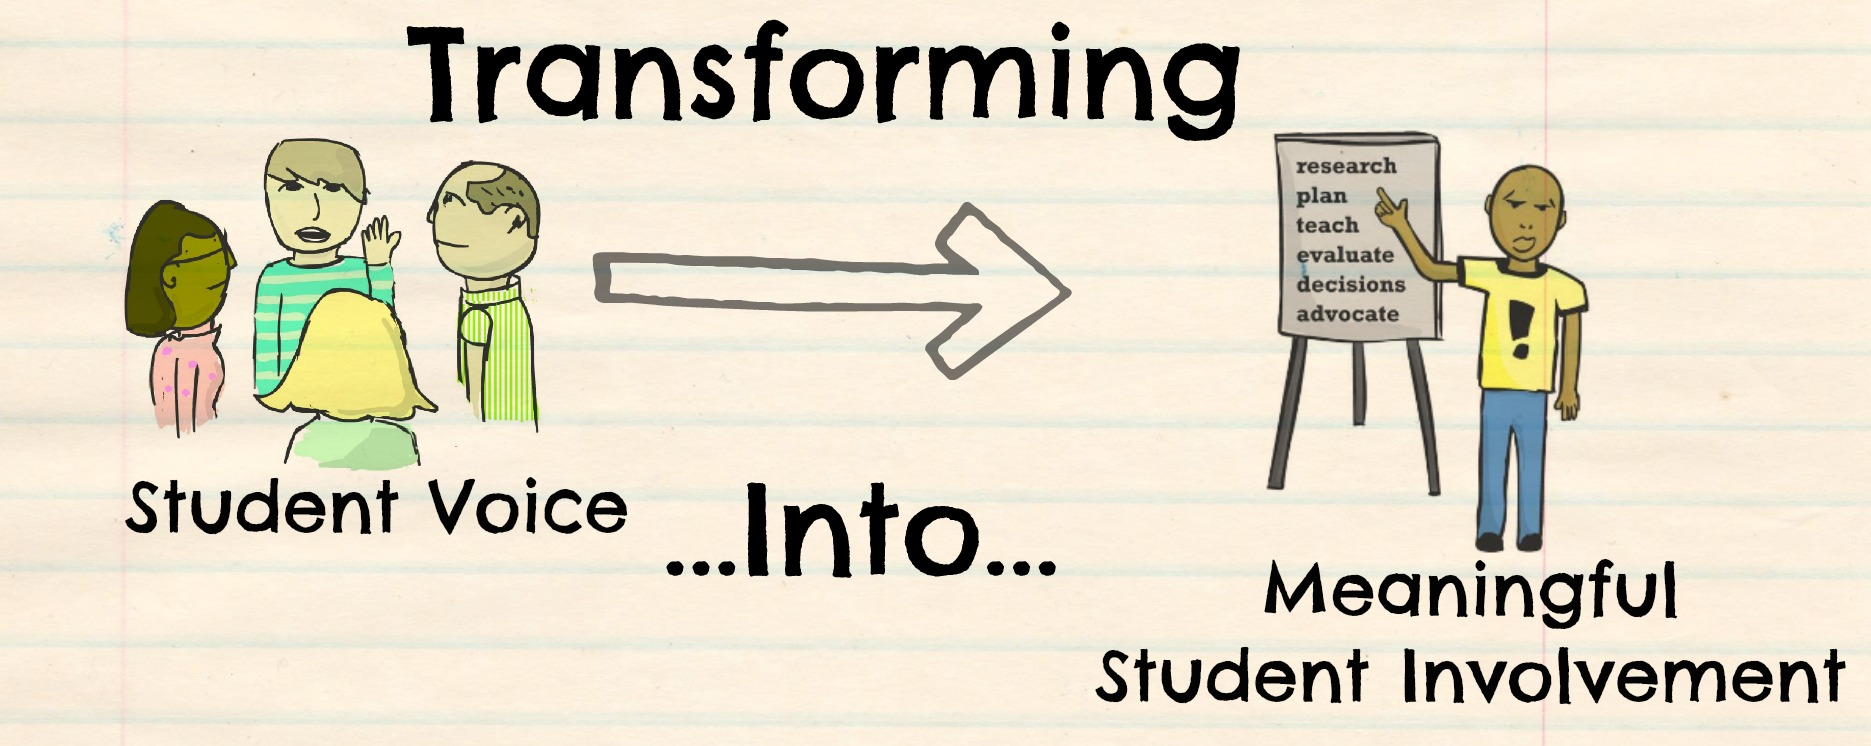 Transforming Student Voice into Meaningful Student Involvement